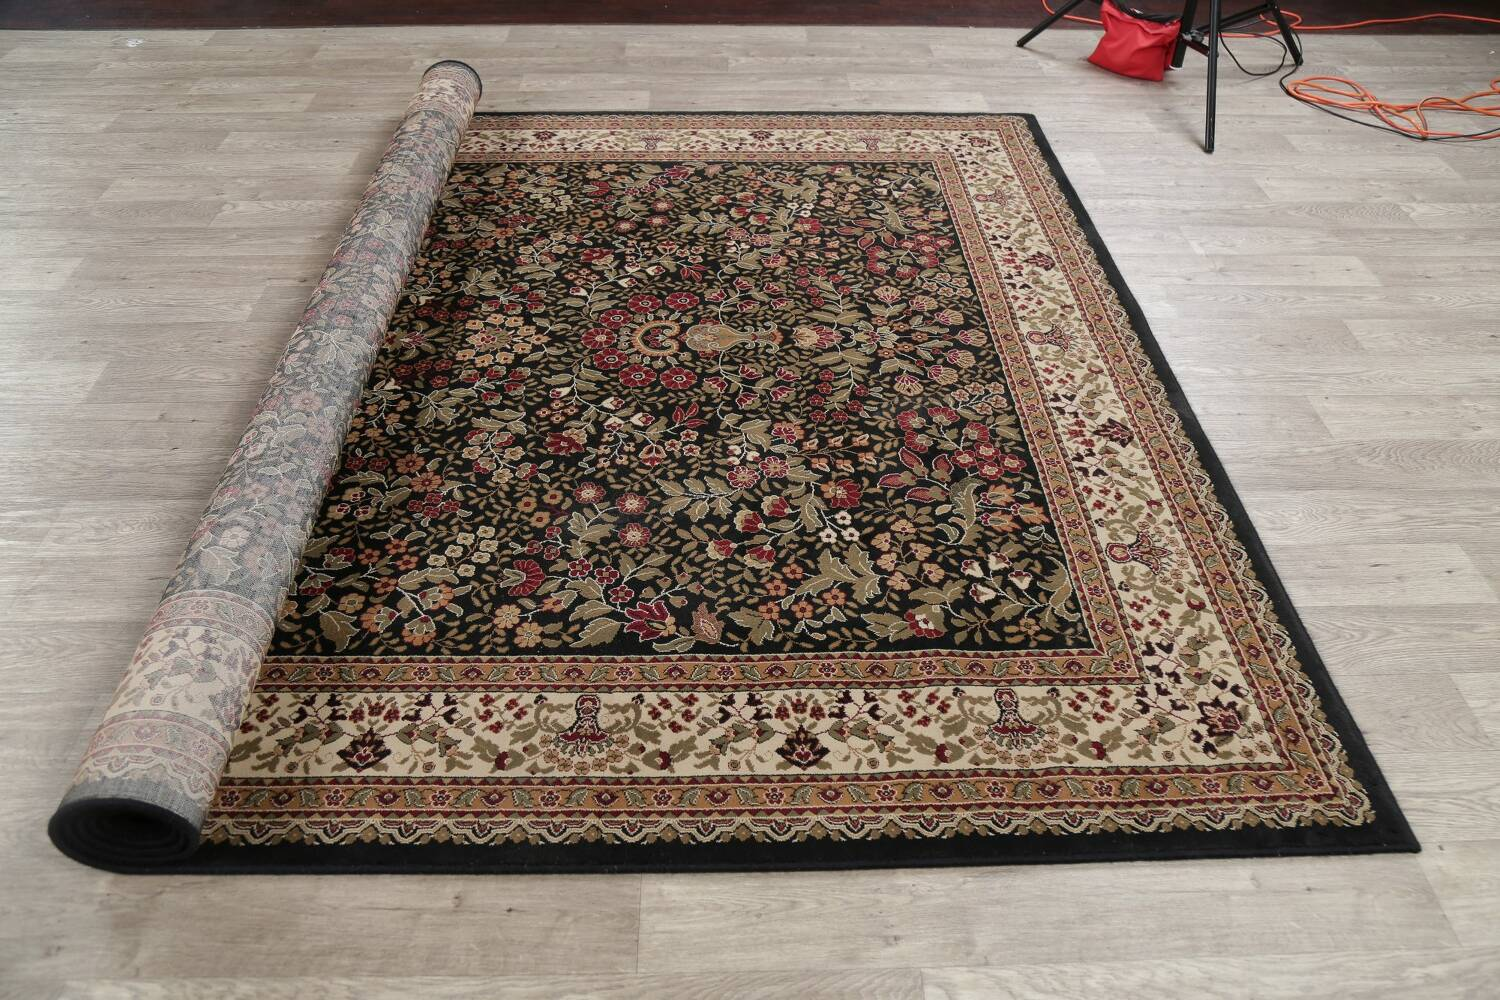 All-Over Floral Agra Turkish Area Rugs image 29